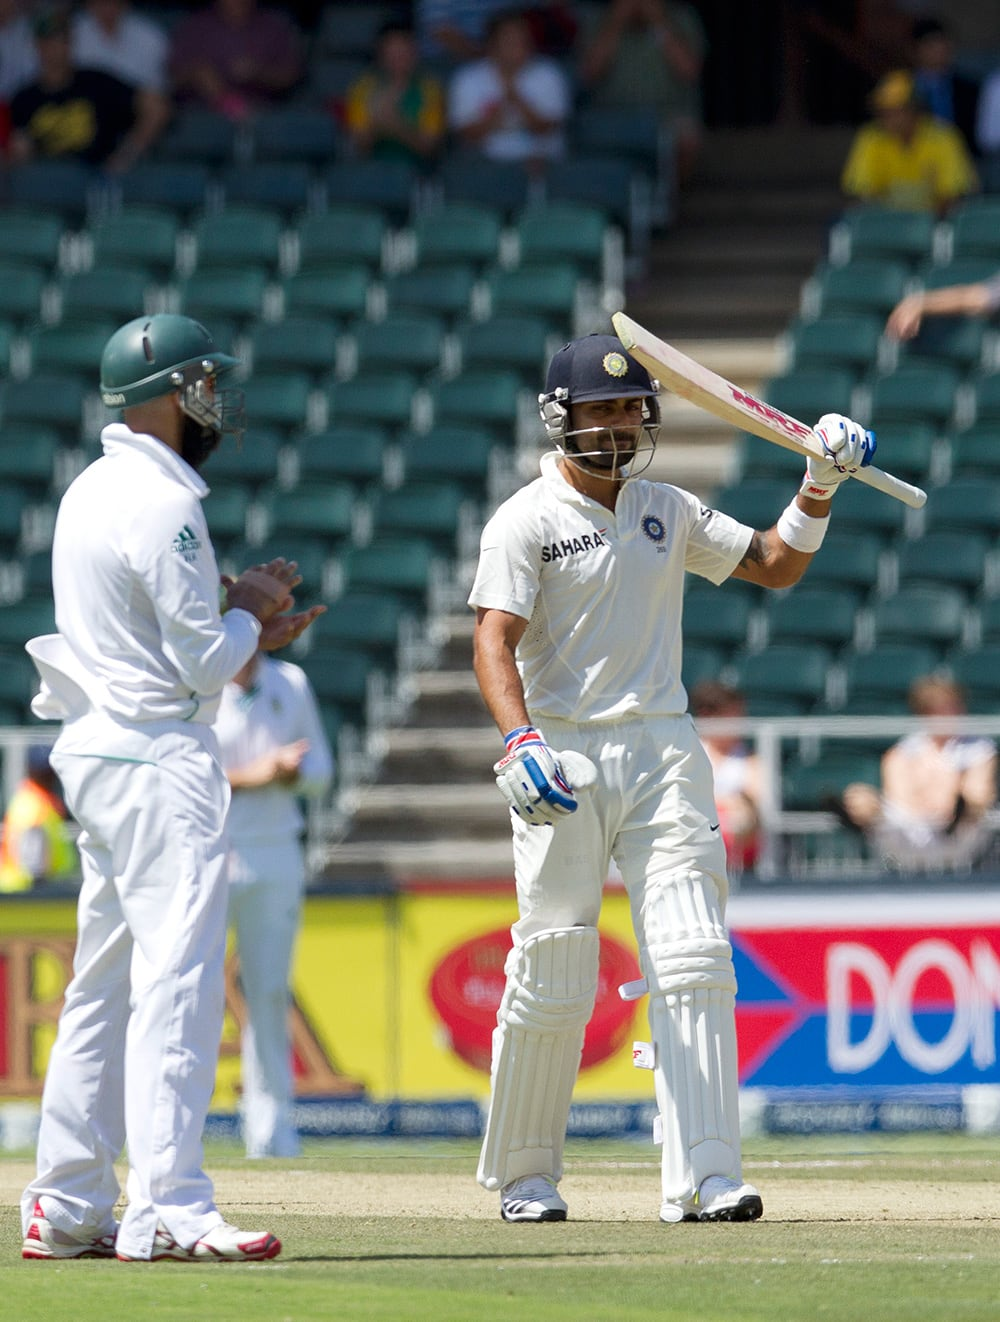 Virat Kohli raises his bat after reaching half century as South Africa's Hashim Amla claps hands during the first day of their cricket test match at Wanderers stadium in Johannesburg, South Africa.